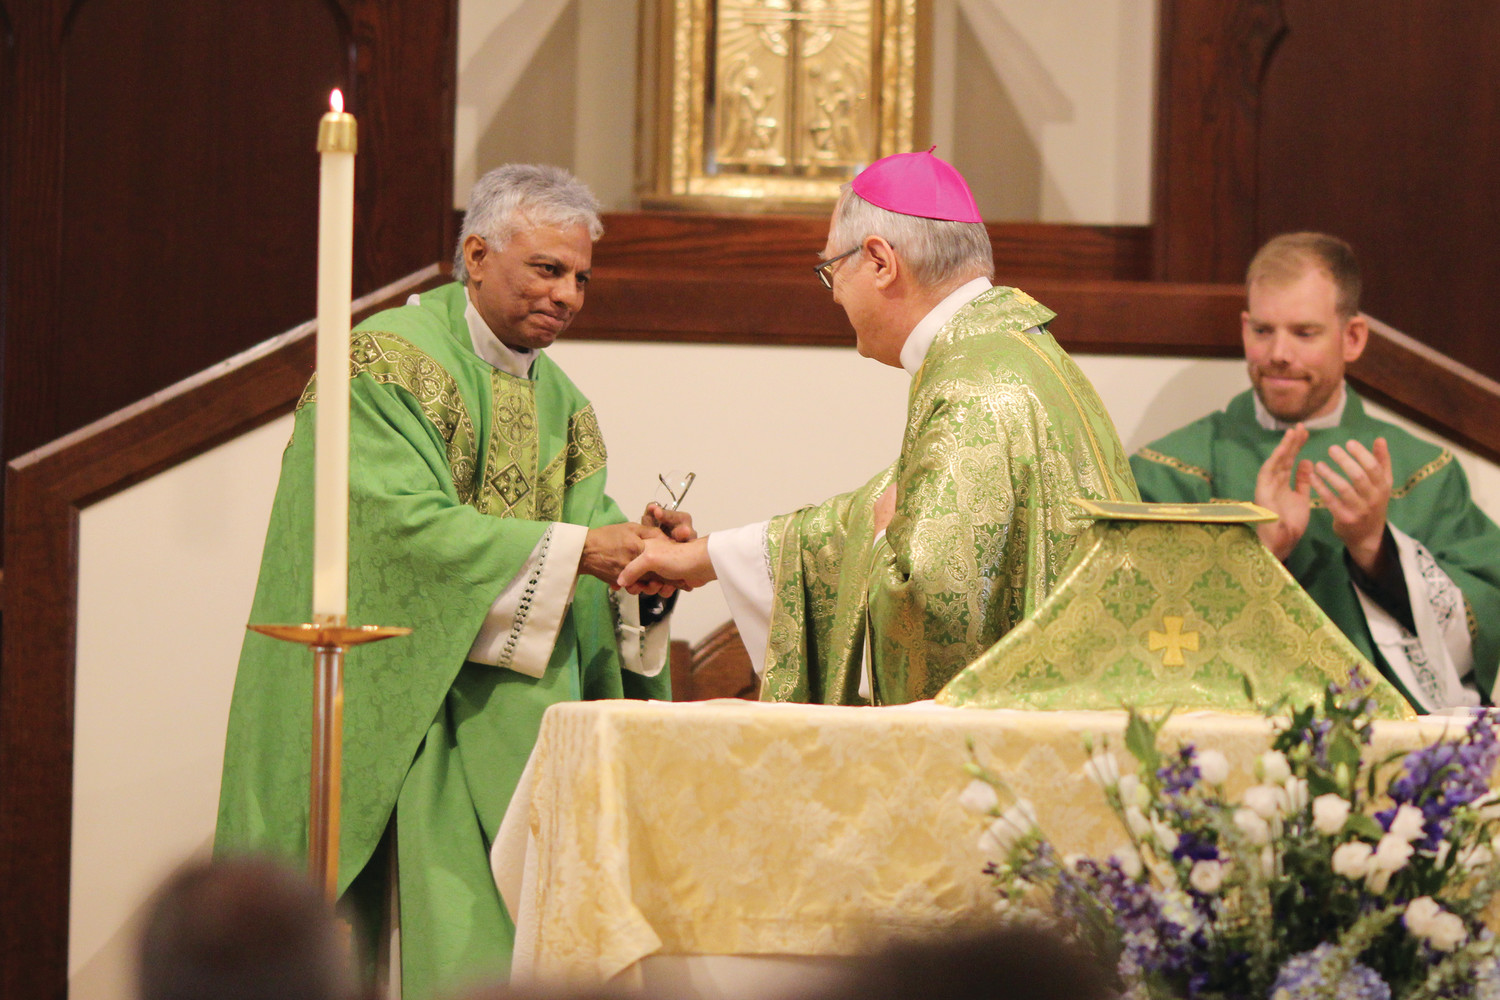 Bishop Tobin and Father Brian Morris, associate pastor, congratulate Father Varghese.